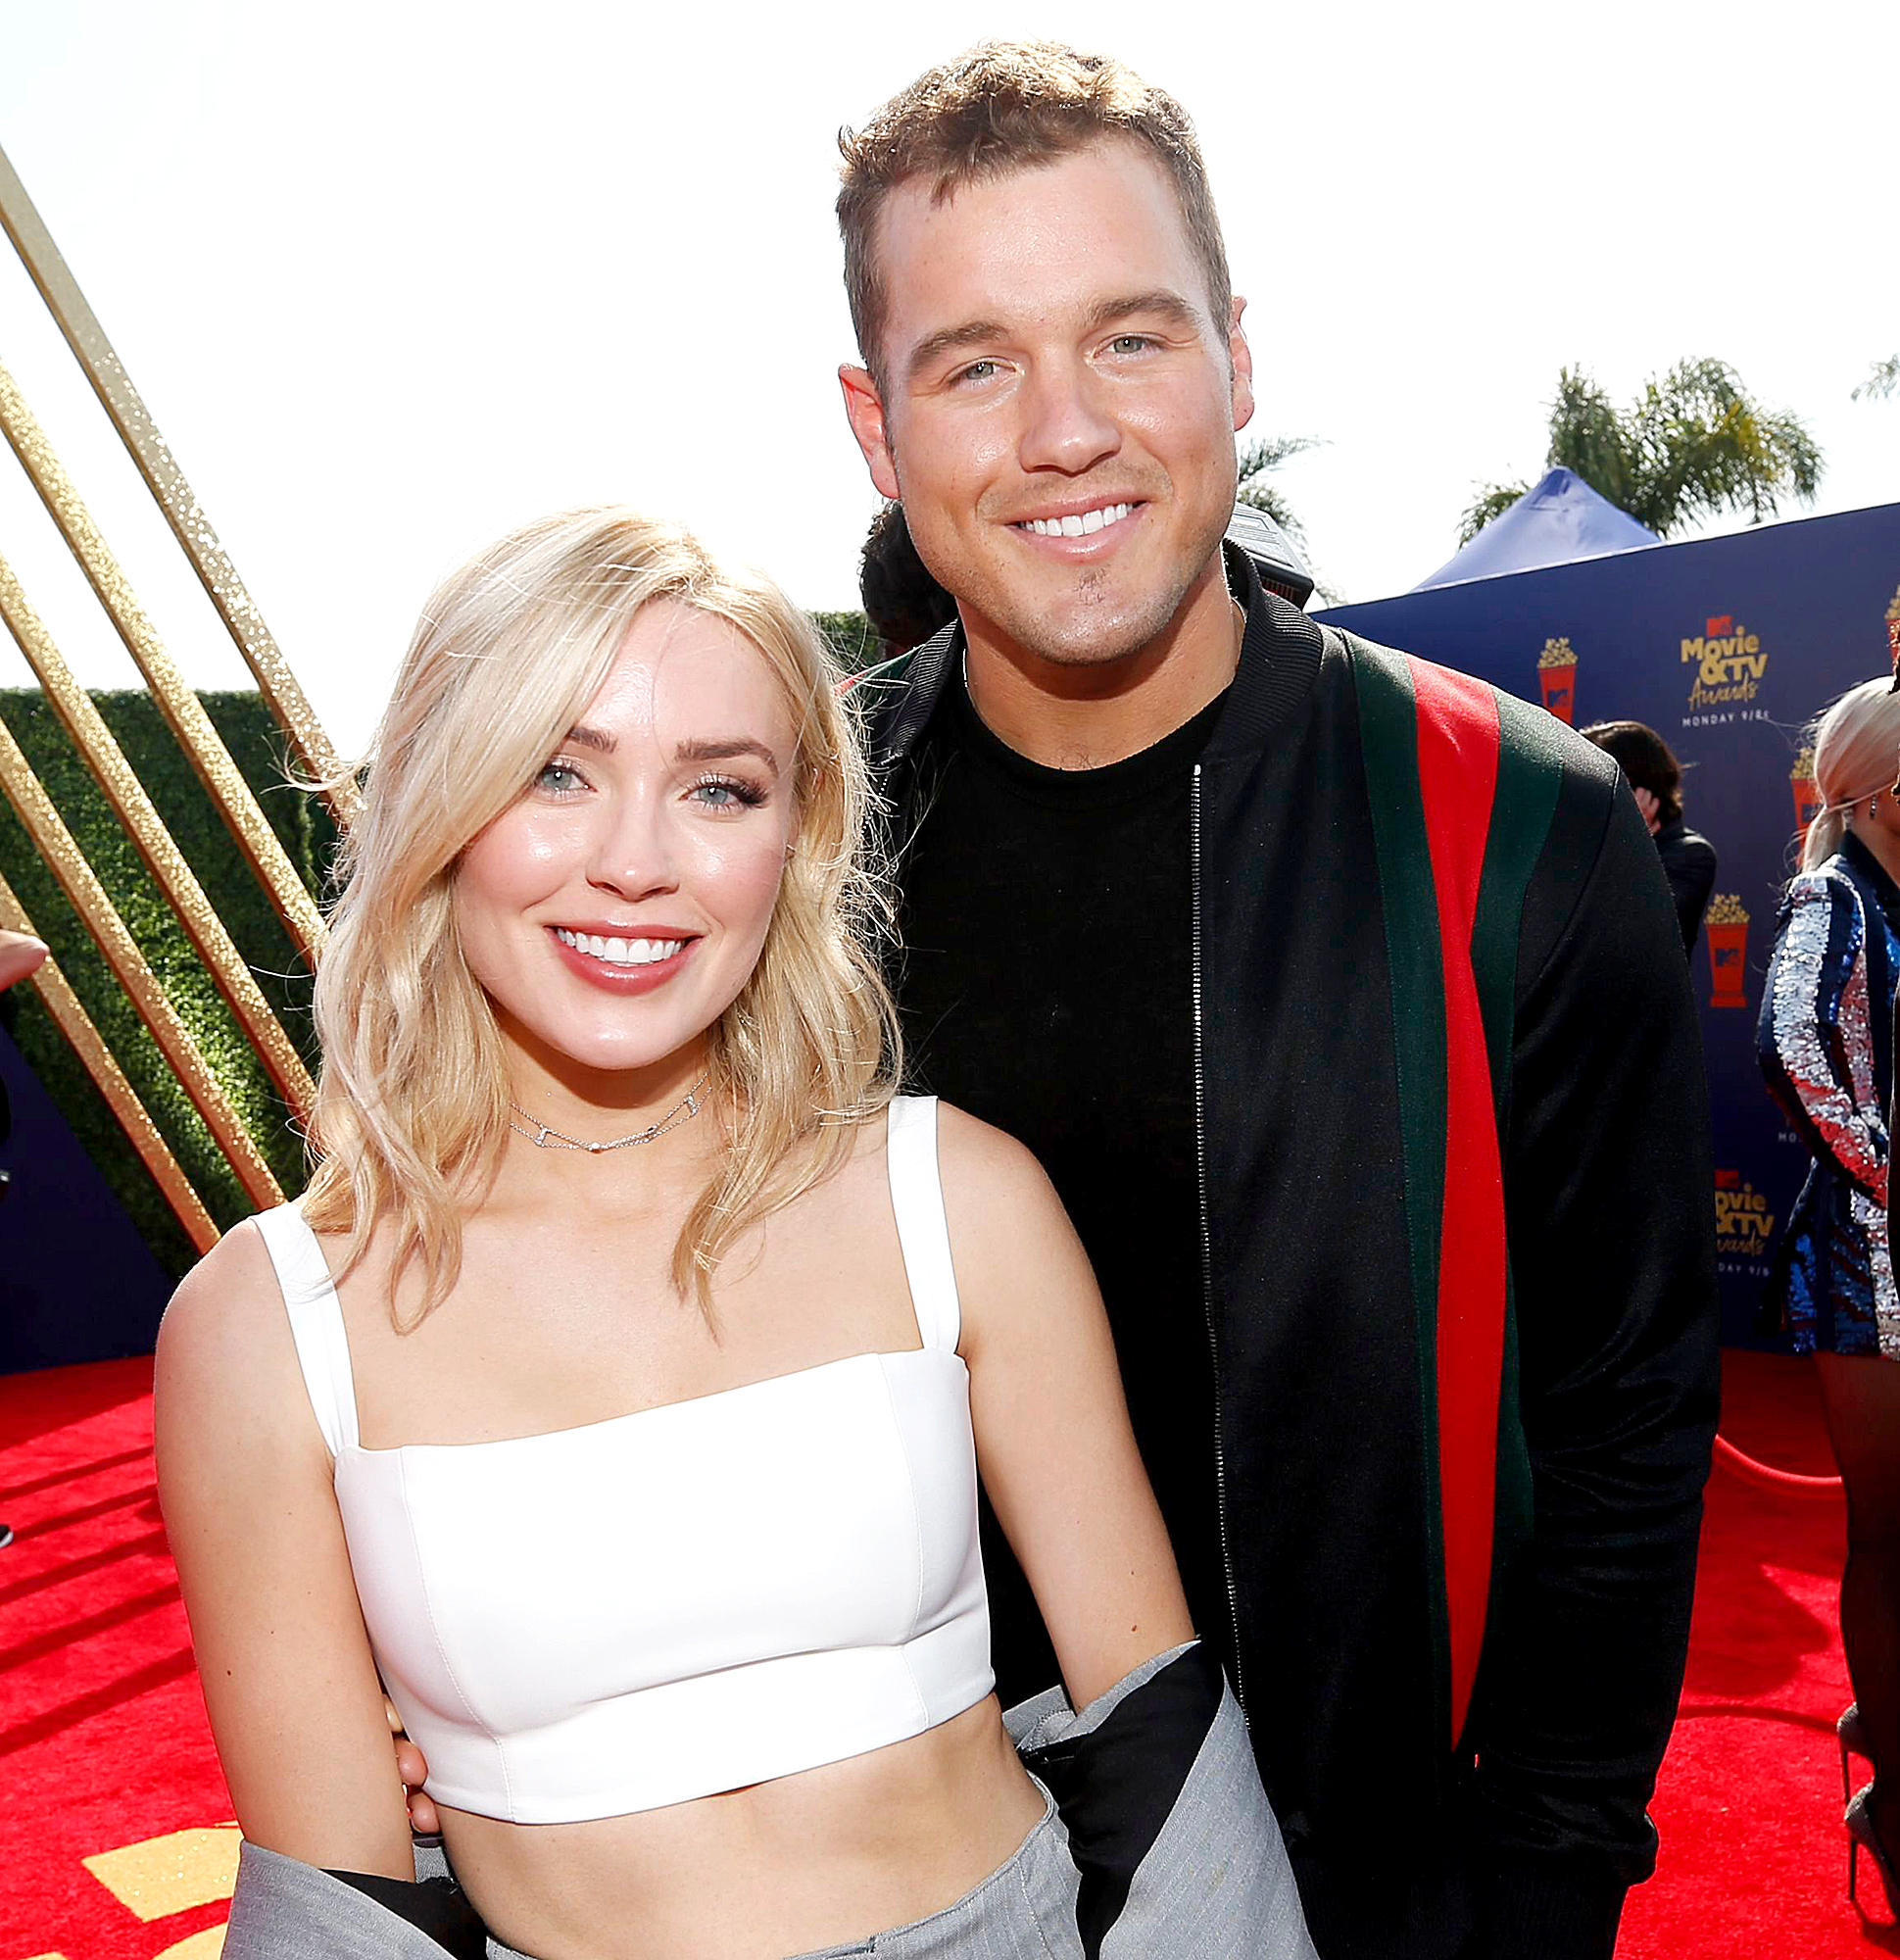 Colton-Underwood-Jokes-He-Didn't-Think-He-and-Cassie-Randolph-Would-Last-1